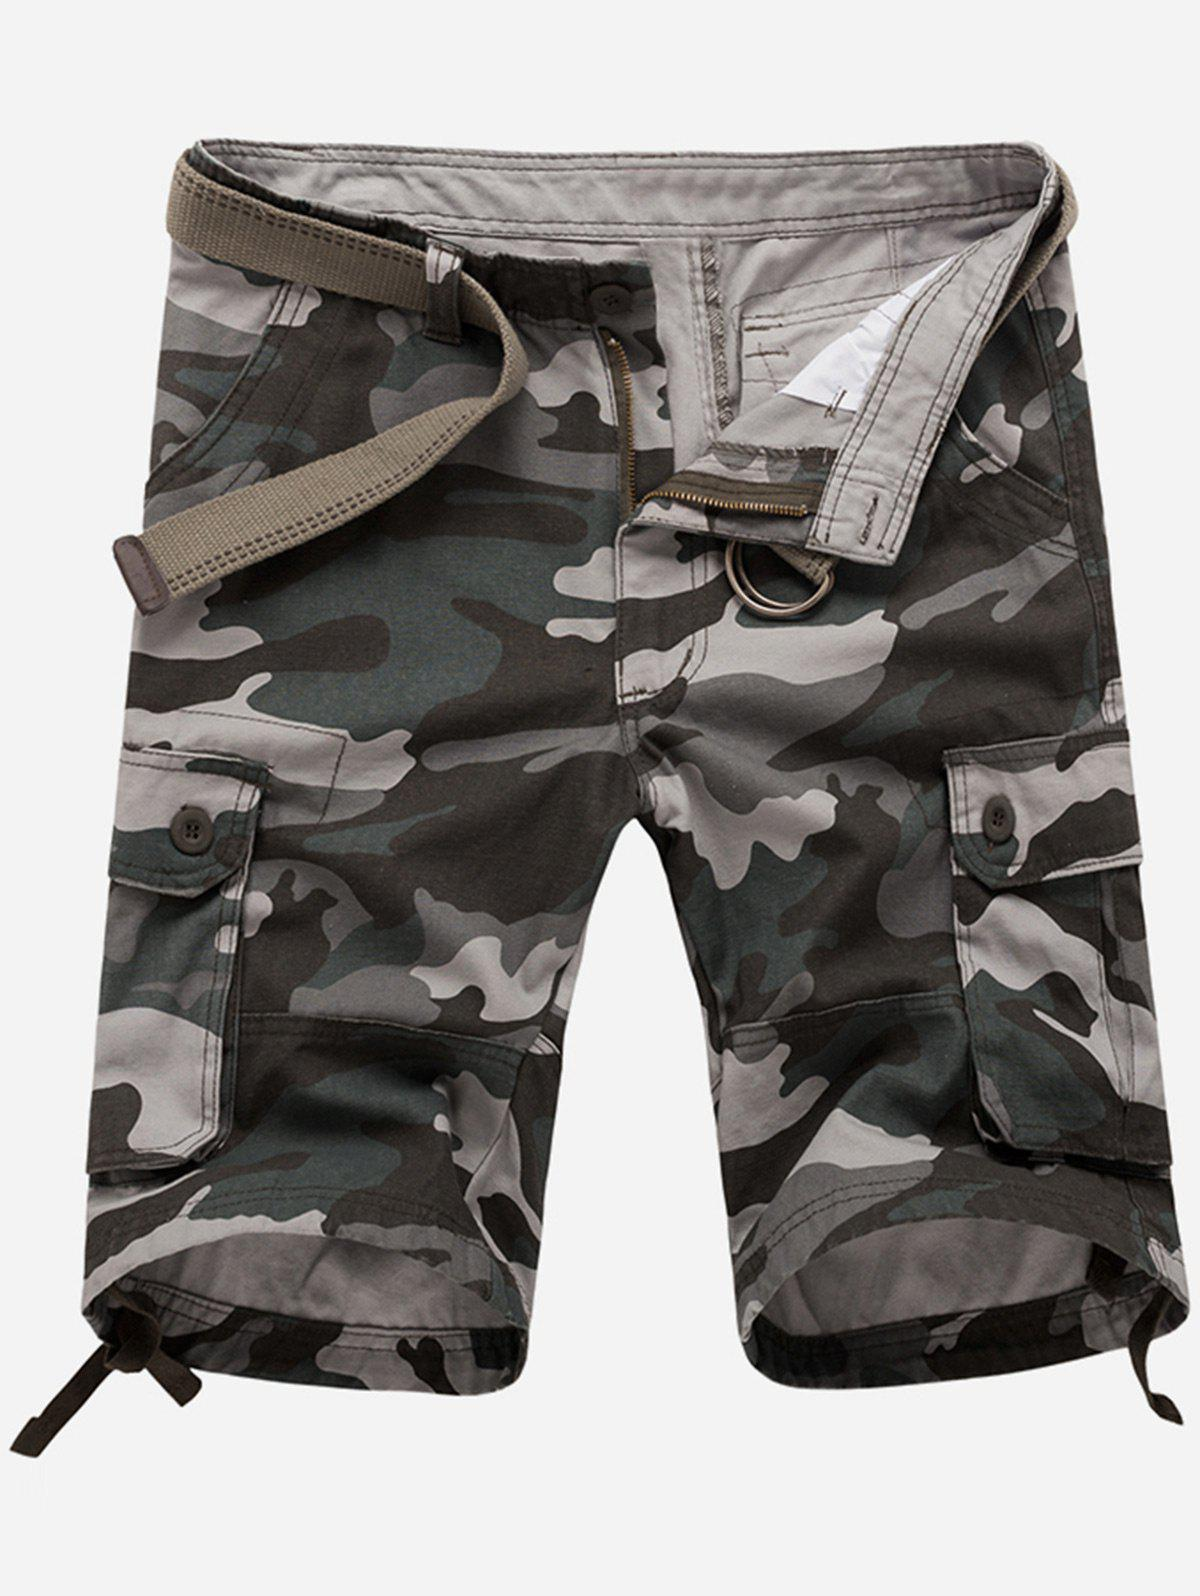 Zipper Fly Pockets Camouflage Cargo Shorts - GRAY 32